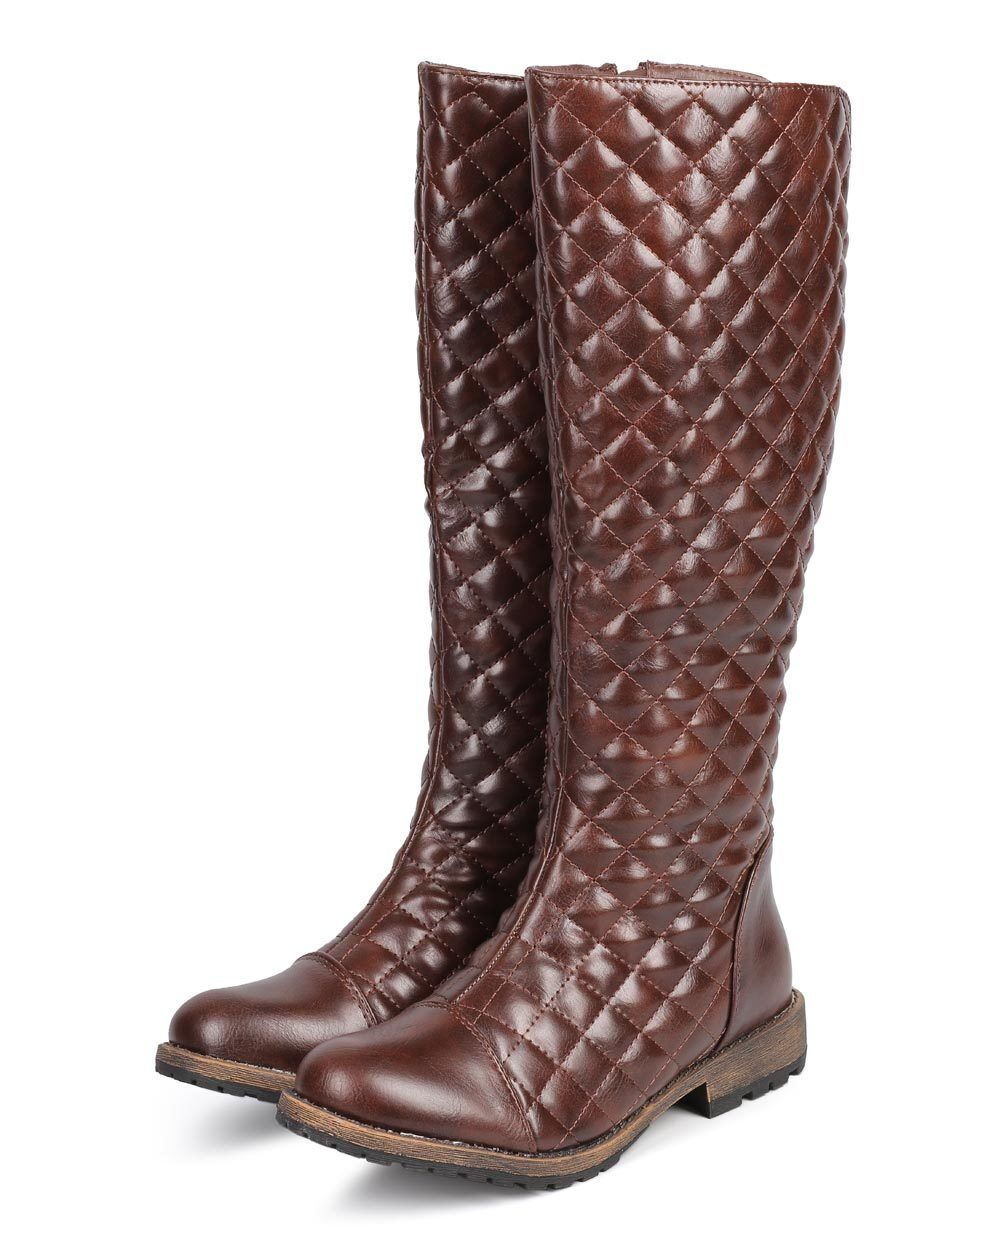 New Women Nature Breeze Kimo-01 Quilted Cap Toe Buckle Knee High Riding Boot